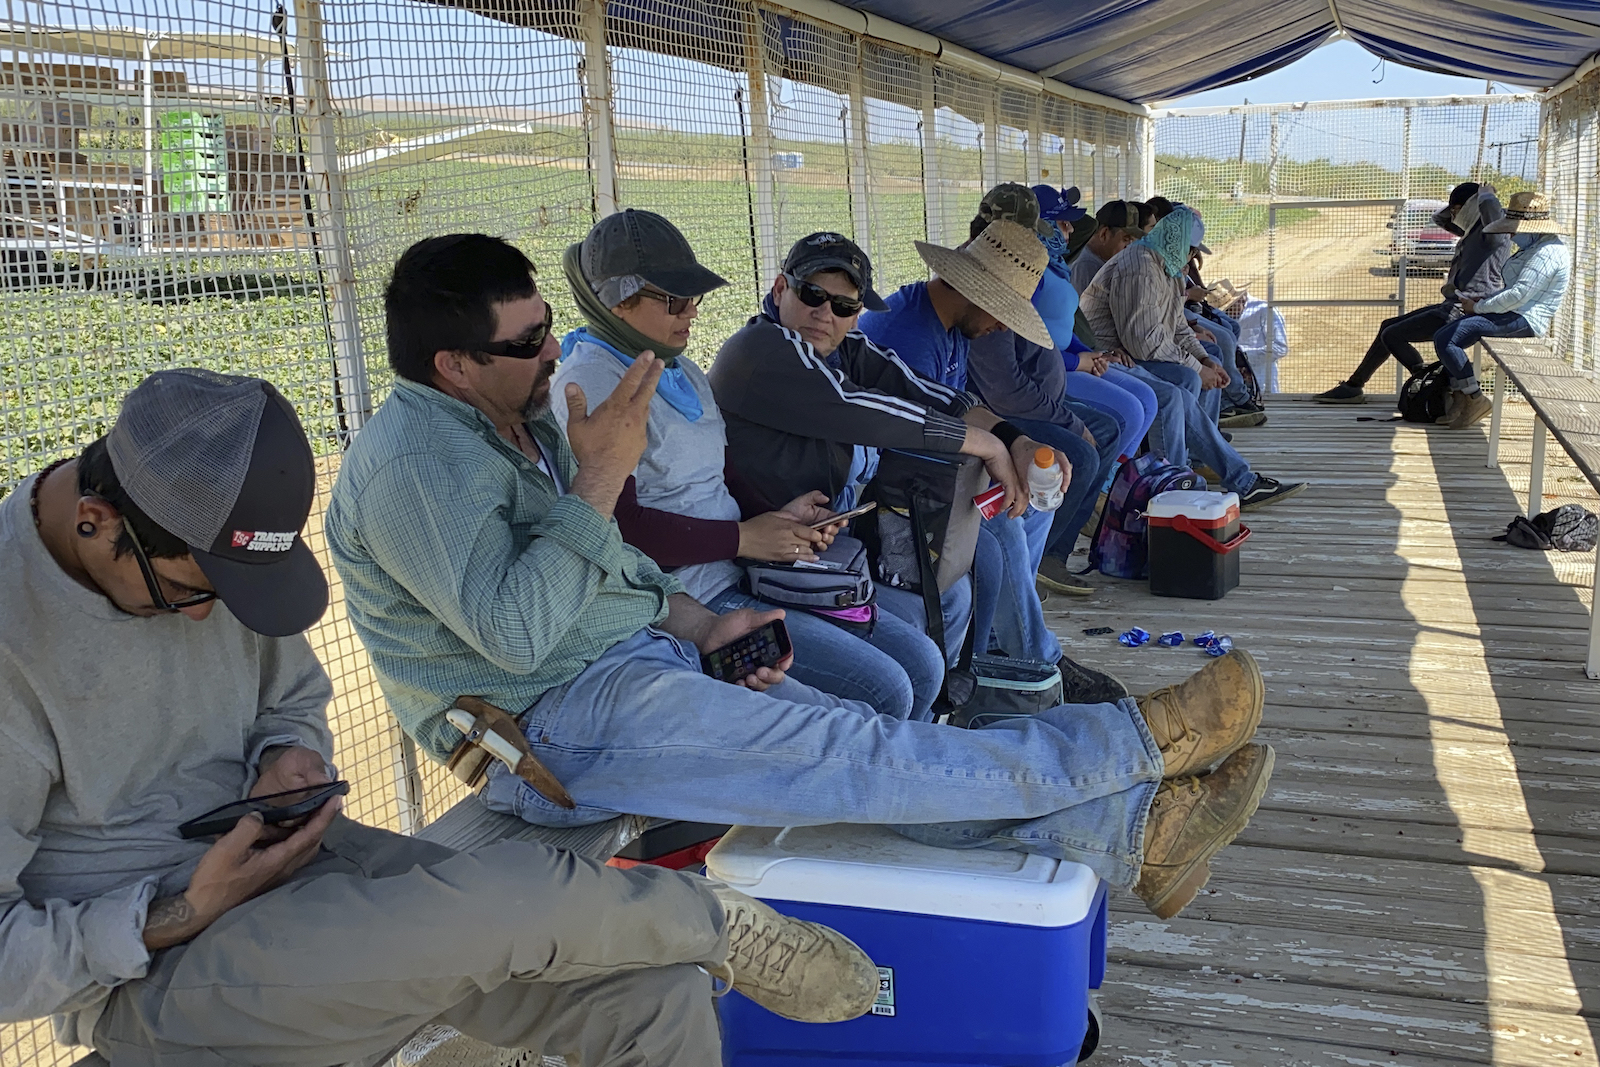 a line of workers in long sleeves and sunglasses, many with hats, sitting on a long bench in the shade of a netted area. Outside, green fields and intense sun